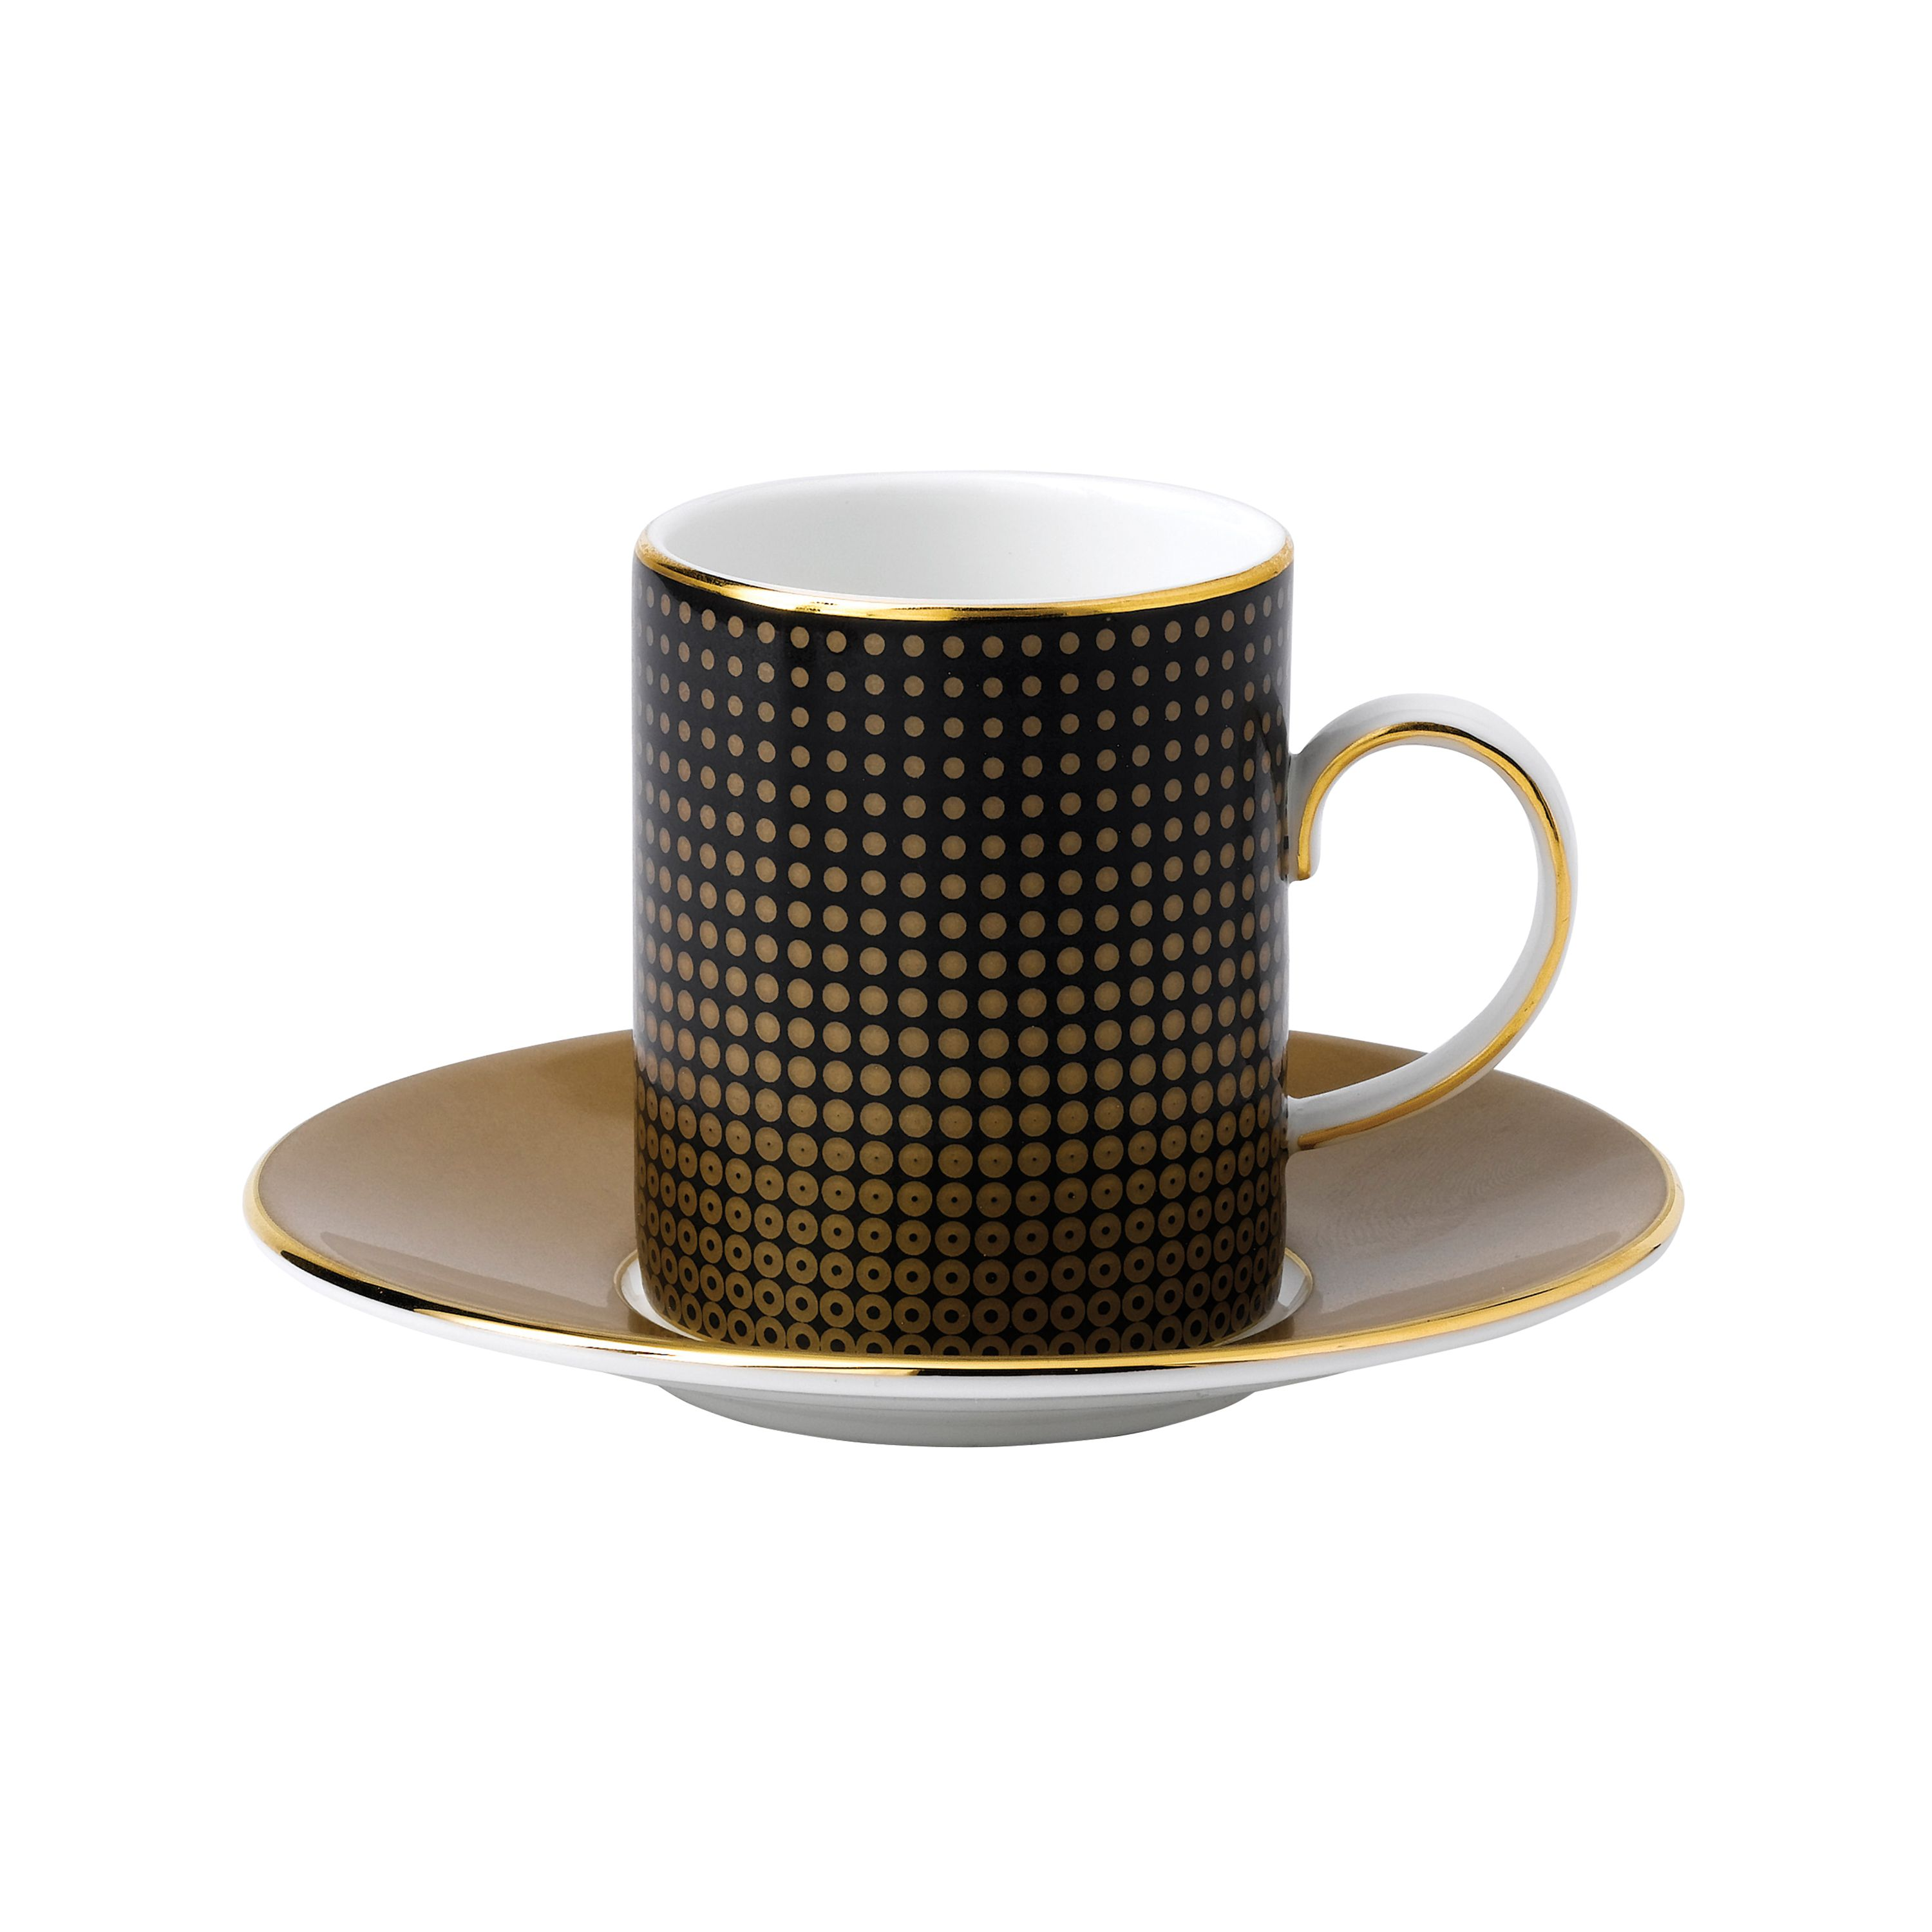 Image of Wedgwood Arris Espresso Cup & Saucer (Sphere/Crack)